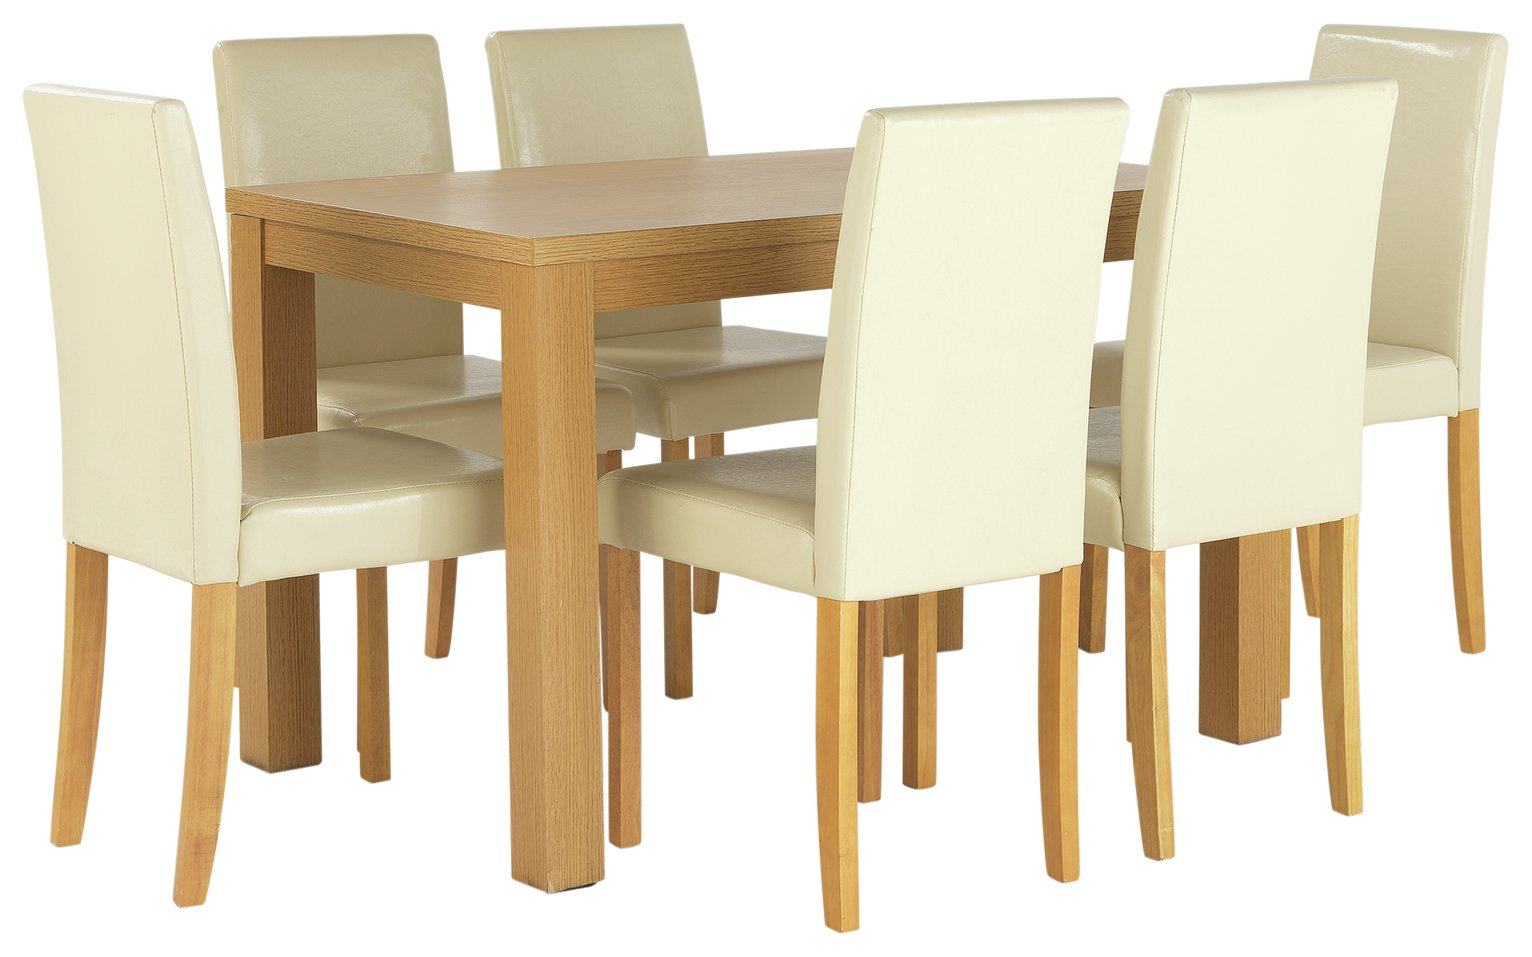 Buy HOME Pemberton Oak Veneer Dining Table 6 Chairs Cream at